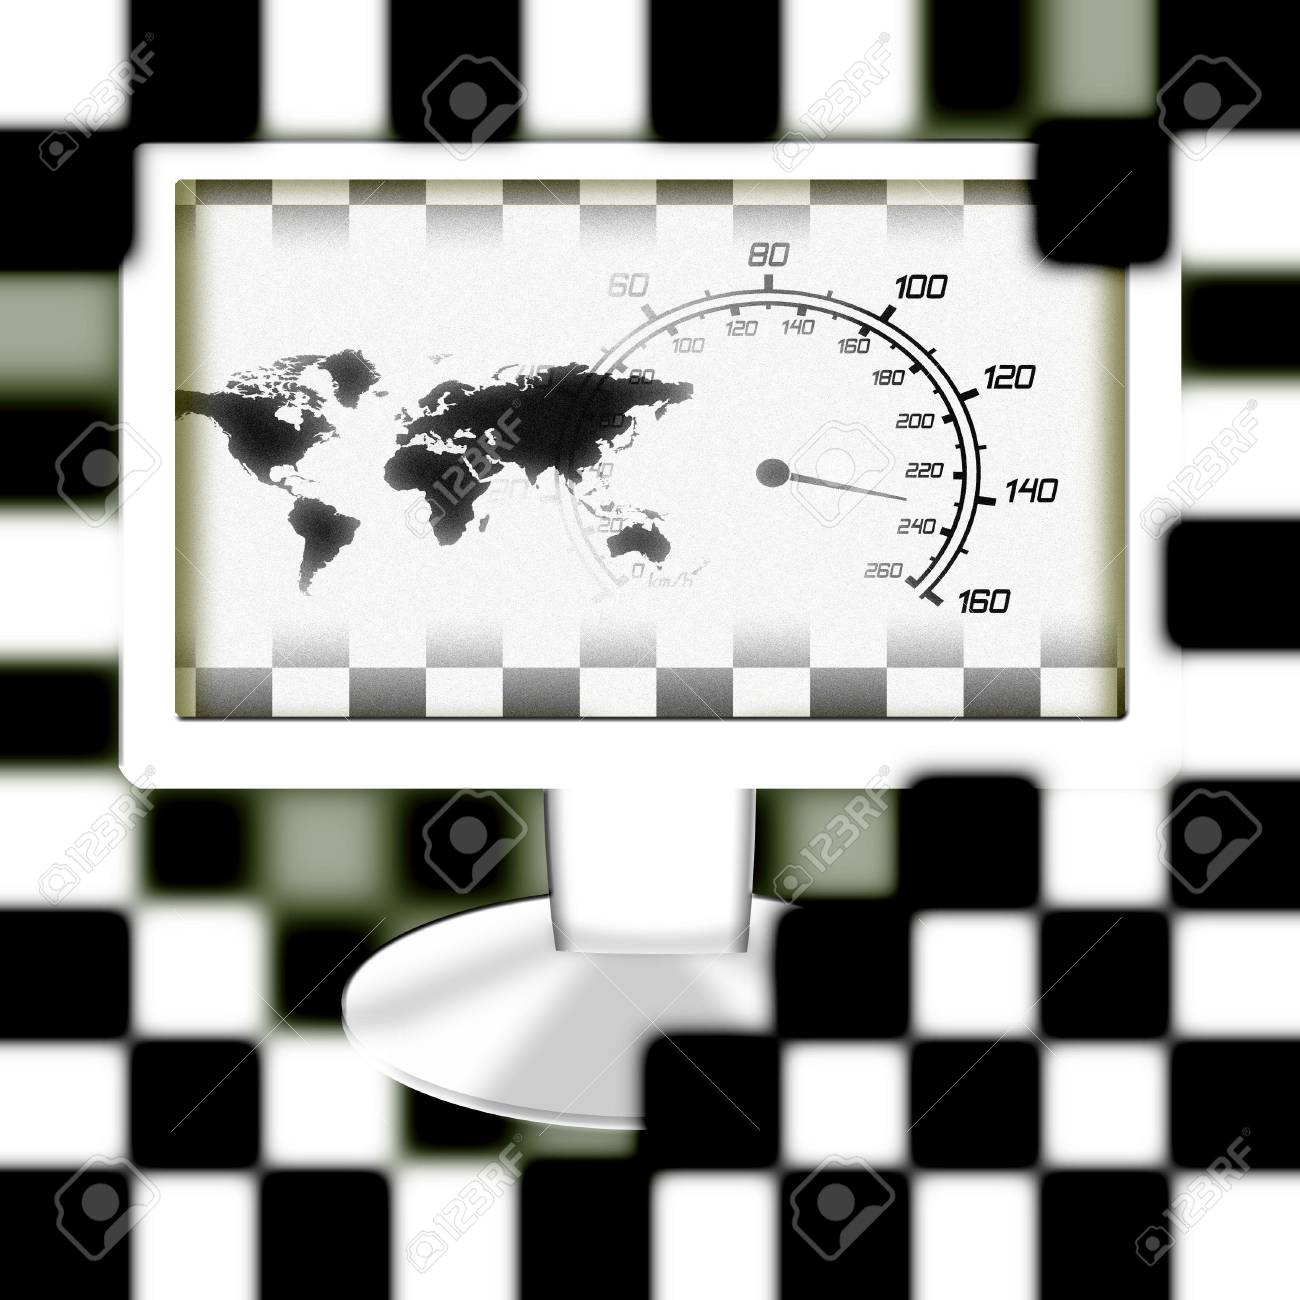 illustration of the around the world racing monitor Stock Photo - 6689064